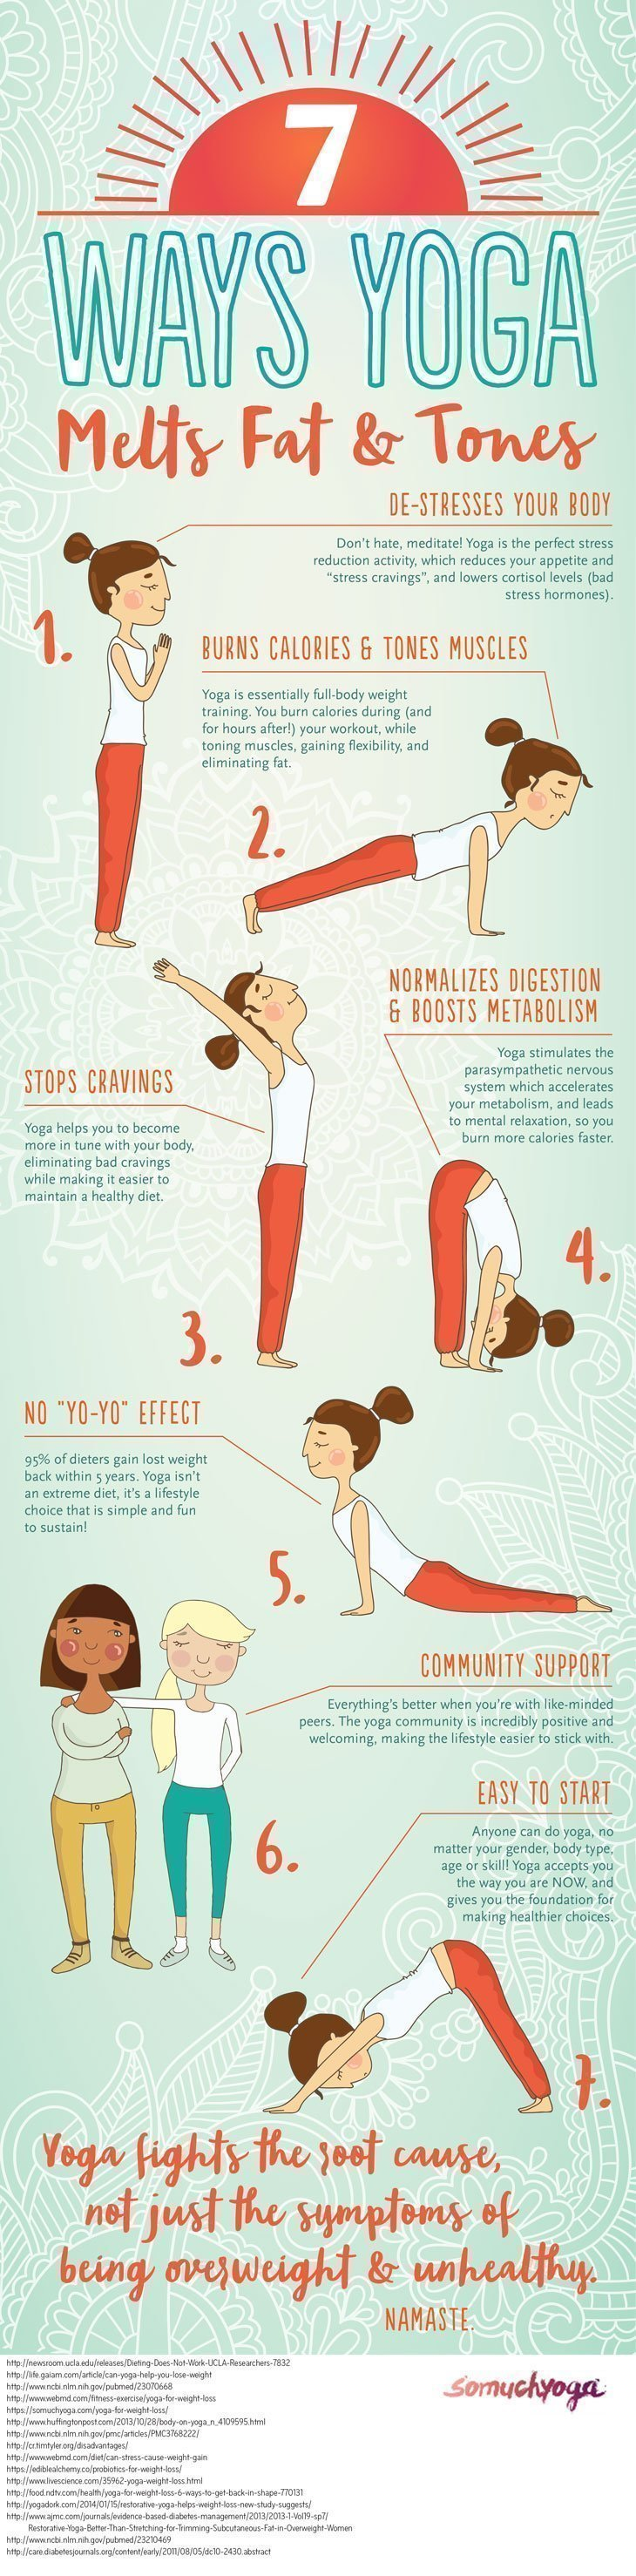 Yoga For Weight Loss Outdoor Yoga